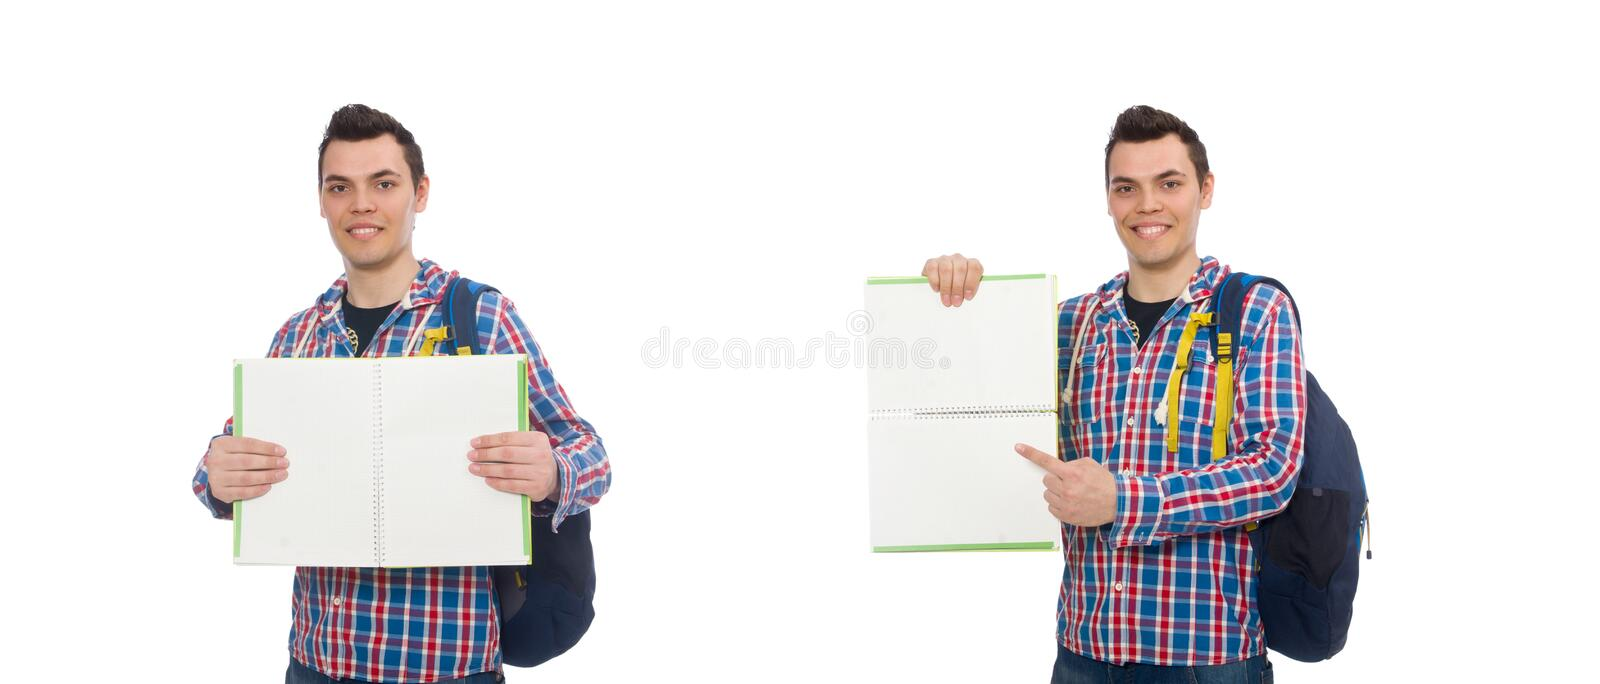 The smiling caucasian student with backpack and book isolated on white. Smiling caucasian student with backpack and book isolated on white stock photos